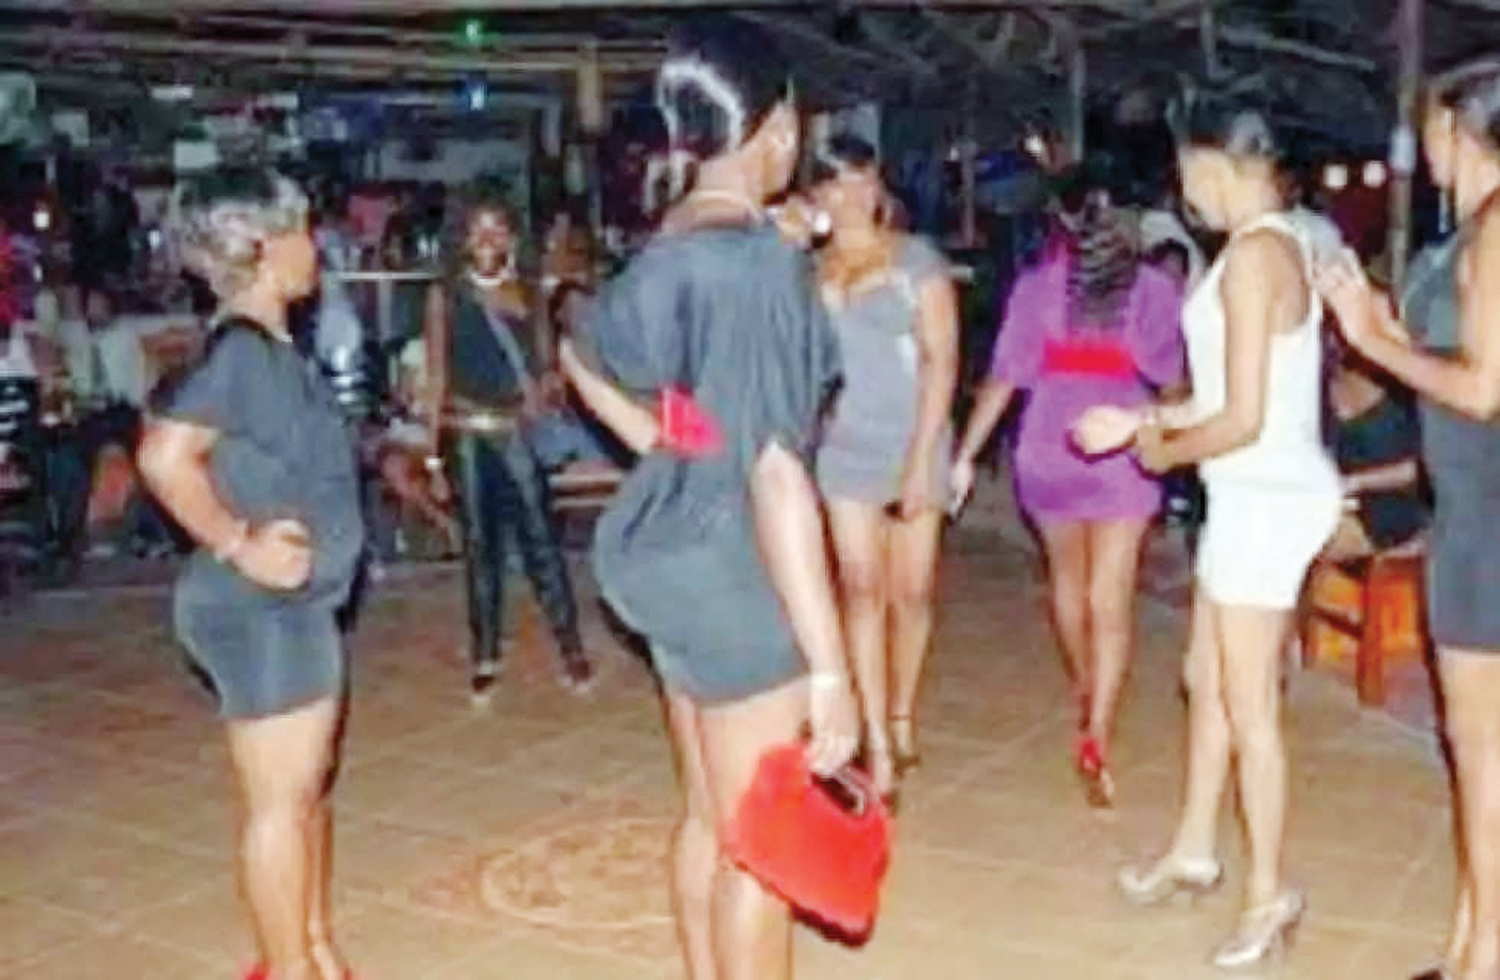 89 prostitutes arrested in FCT